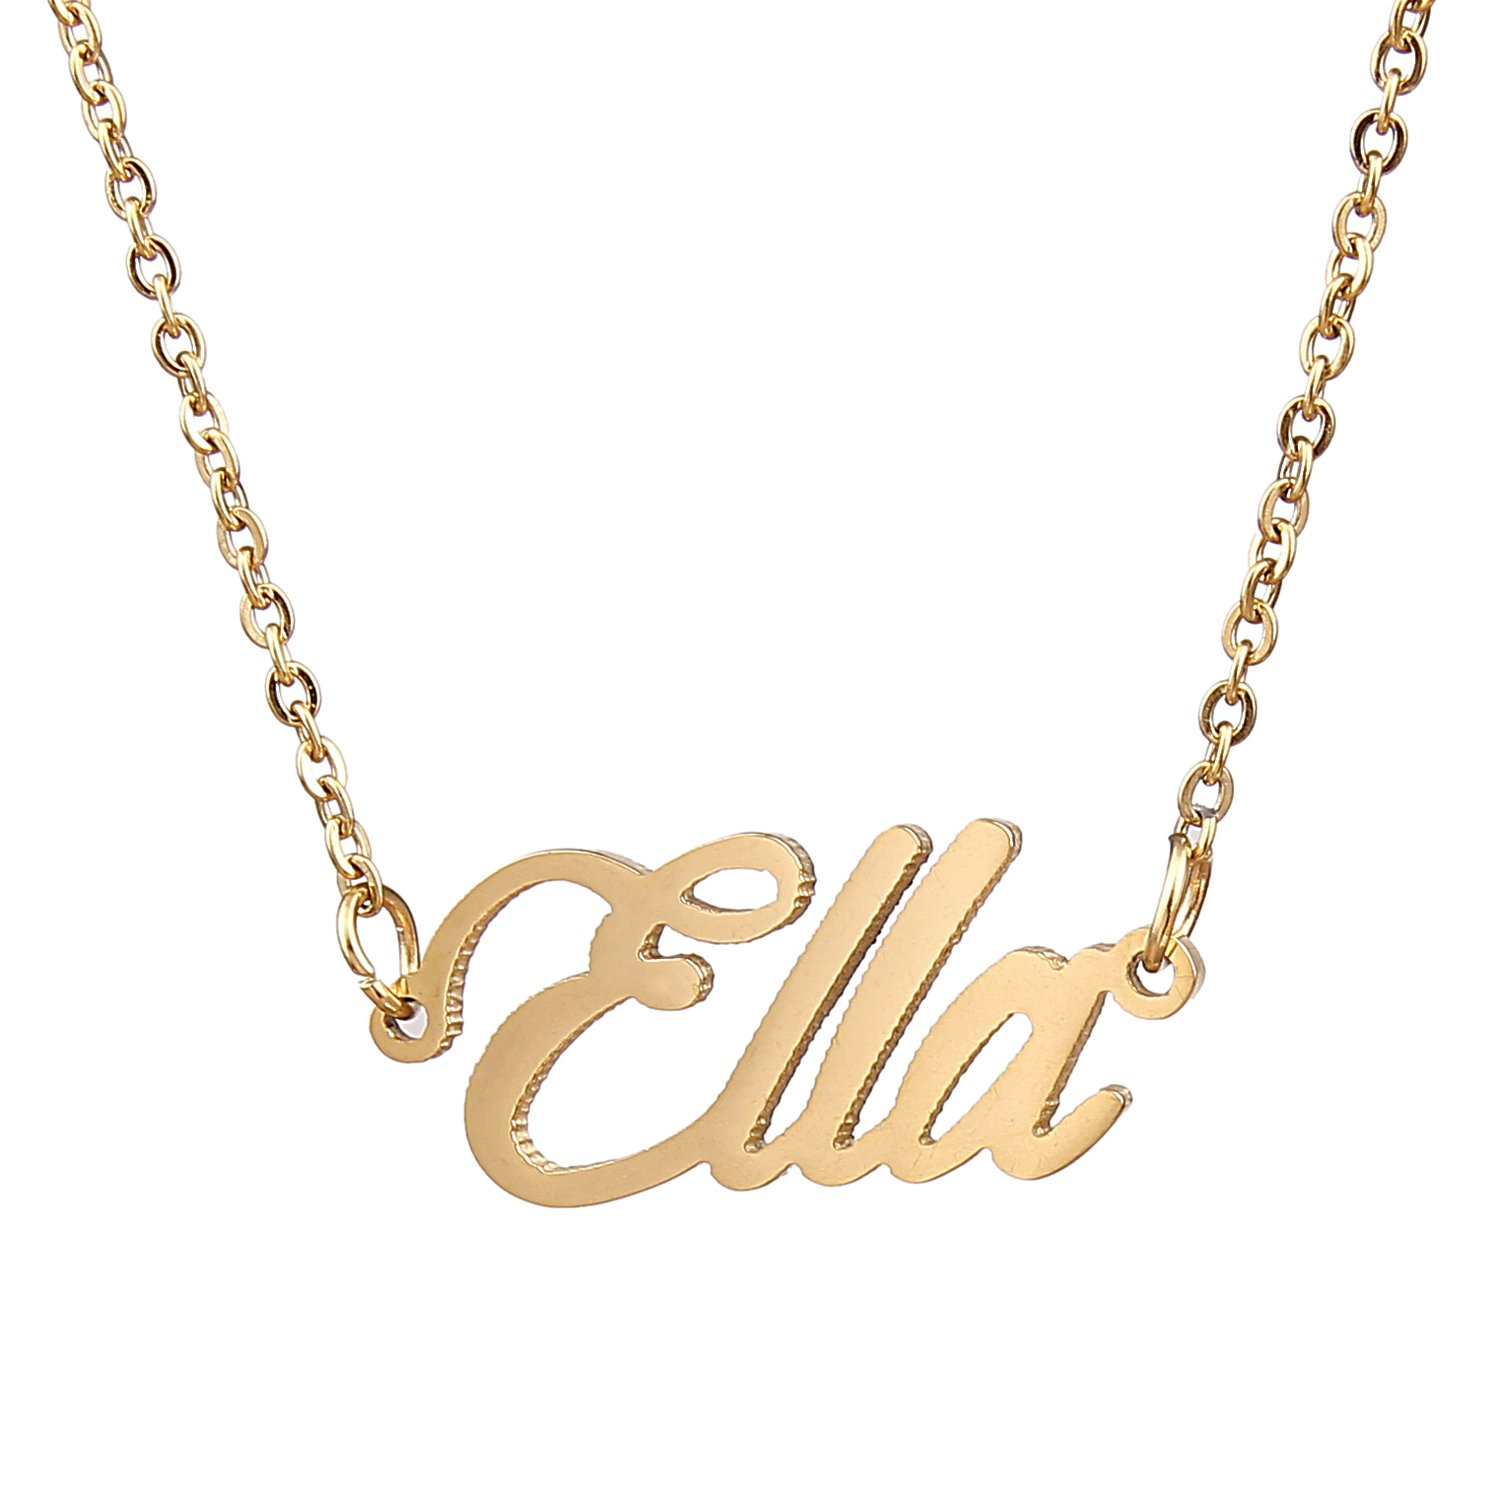 gold necklaces silver n beauty necklace neck name glorious style jewellery